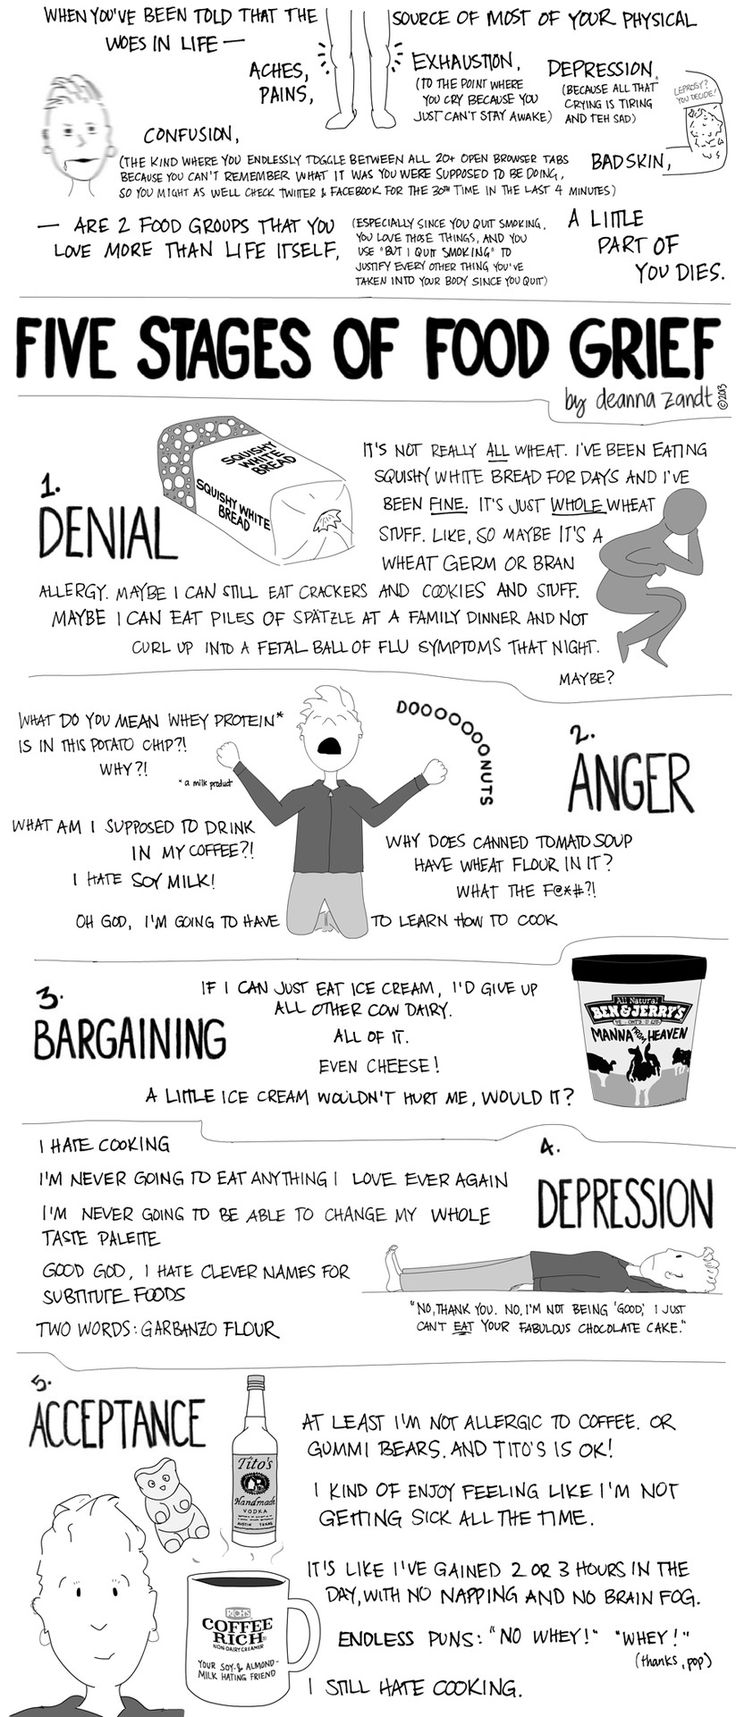 Five Stages of Food Grief - this is exactly what diagnosis as a celiac felt like. #celiac #glutenfree